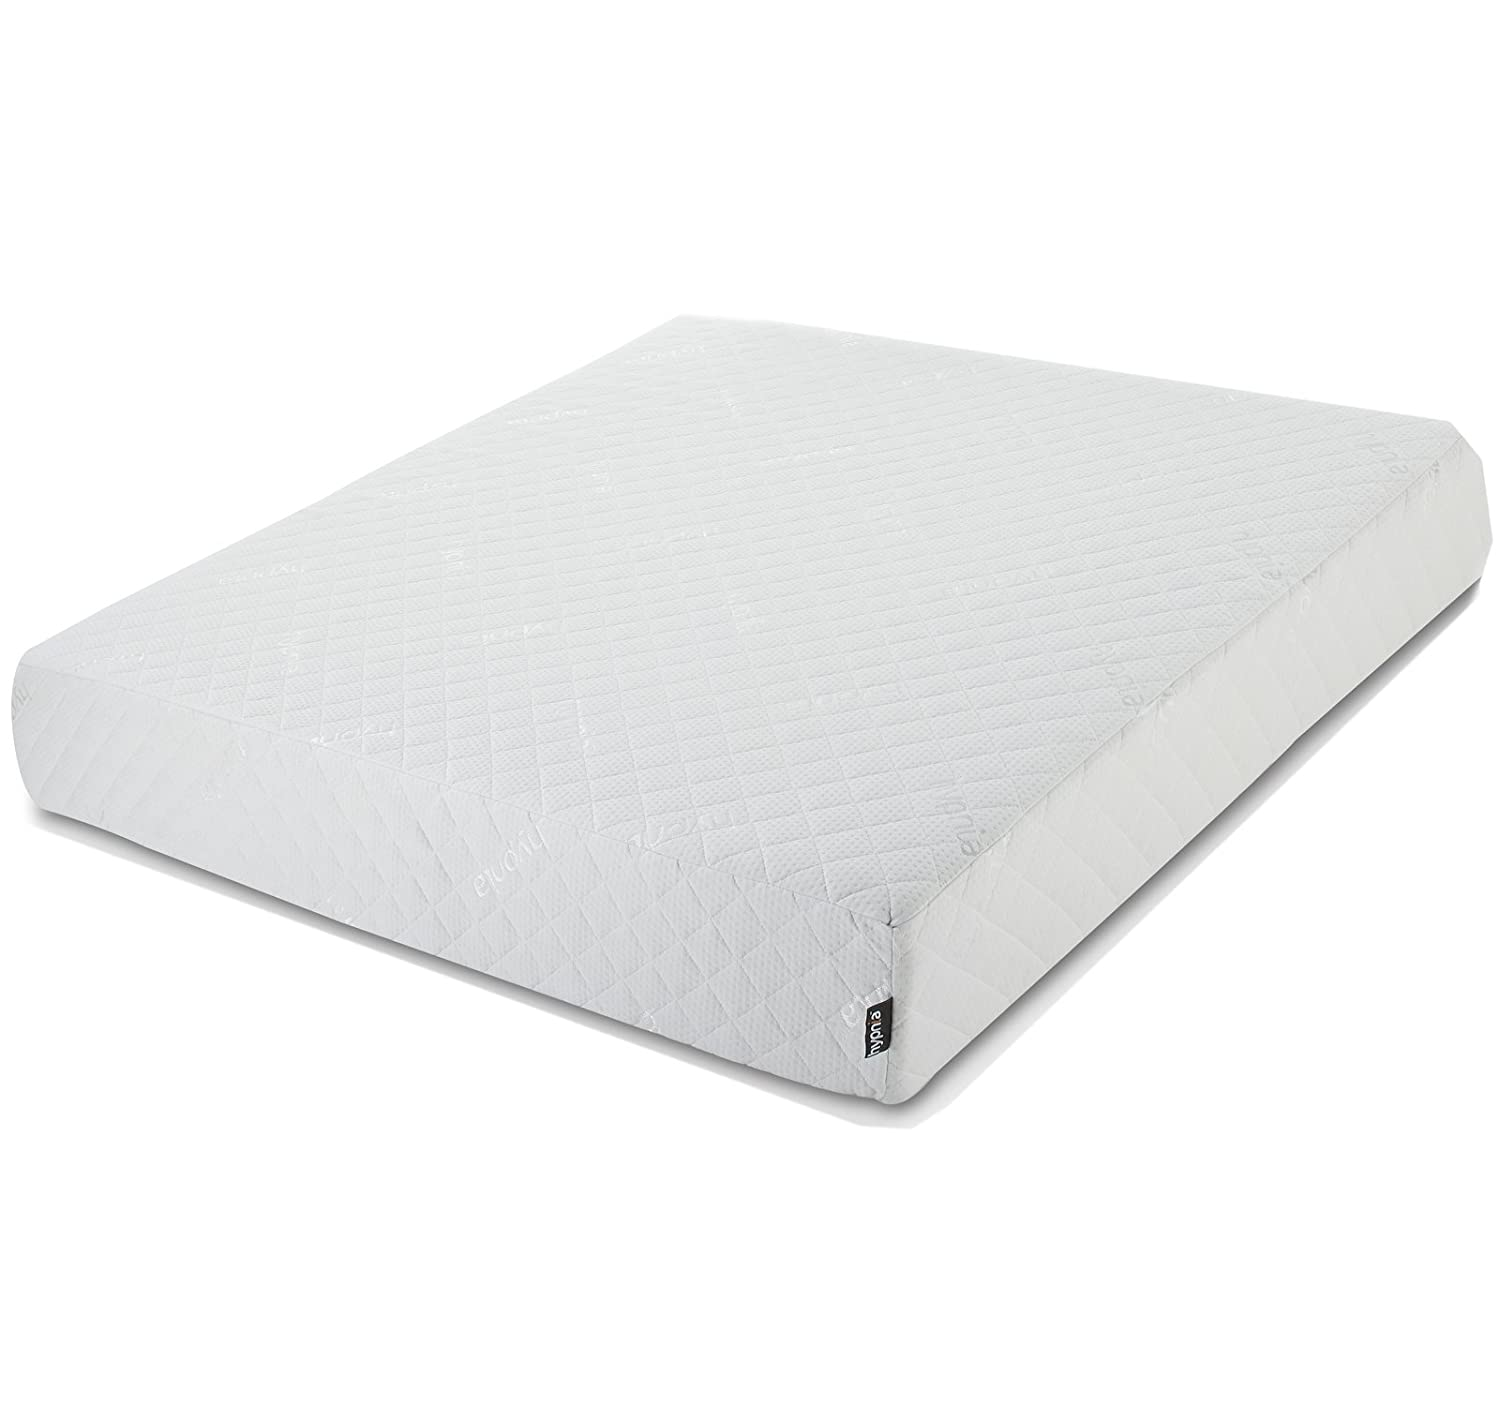 Materasso Top Air Silver.Hypnia 12 Inch Memory Foam Mattress Double Size 4ft6 X 6ft3